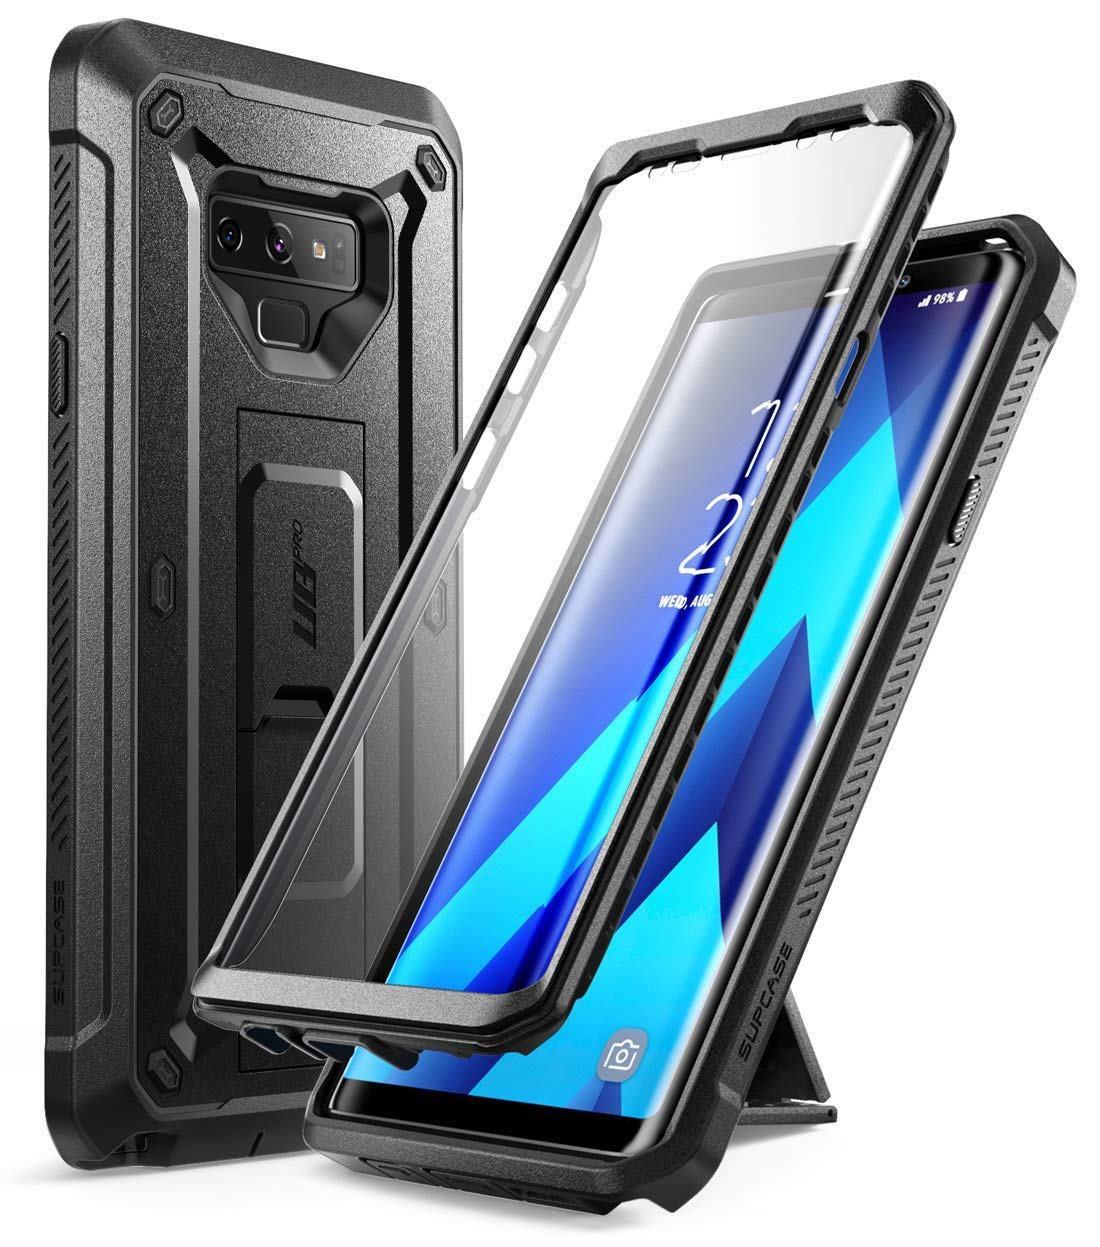 SUPCASE Galaxy Note 9 case and screen protector